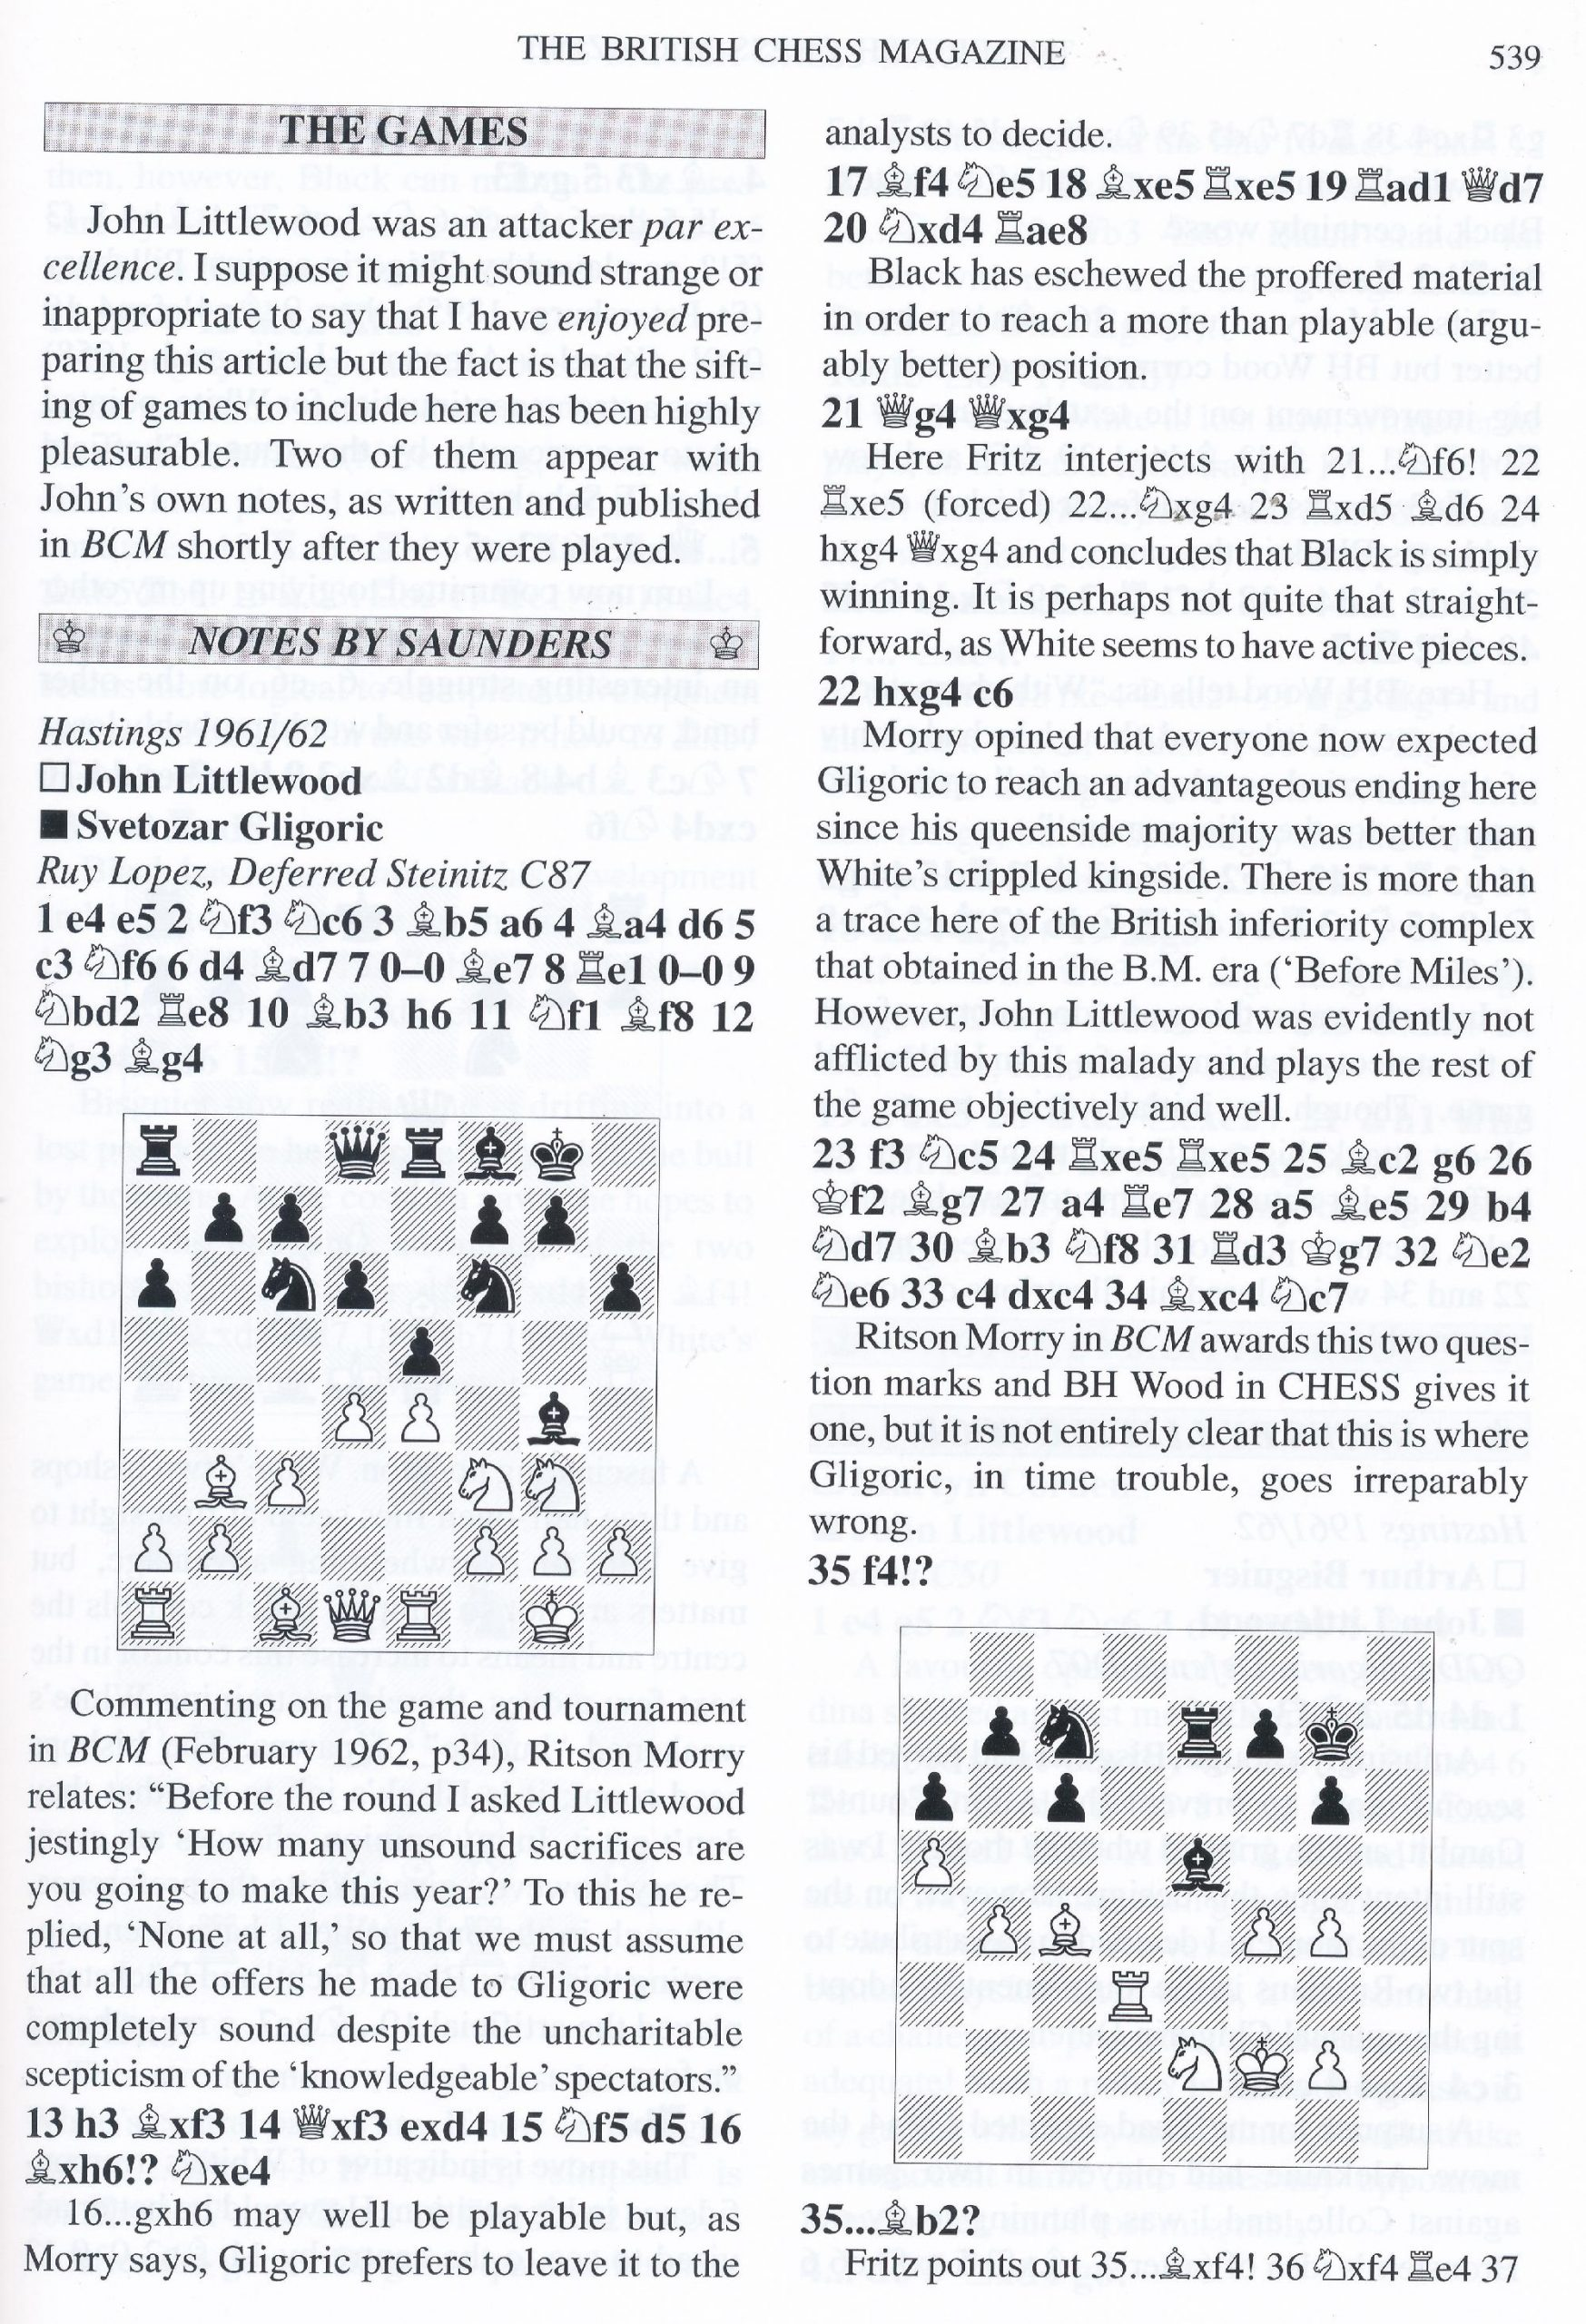 British Chess Magazine, Volume CXXIV (129), 2009, Number 10, October, page 539